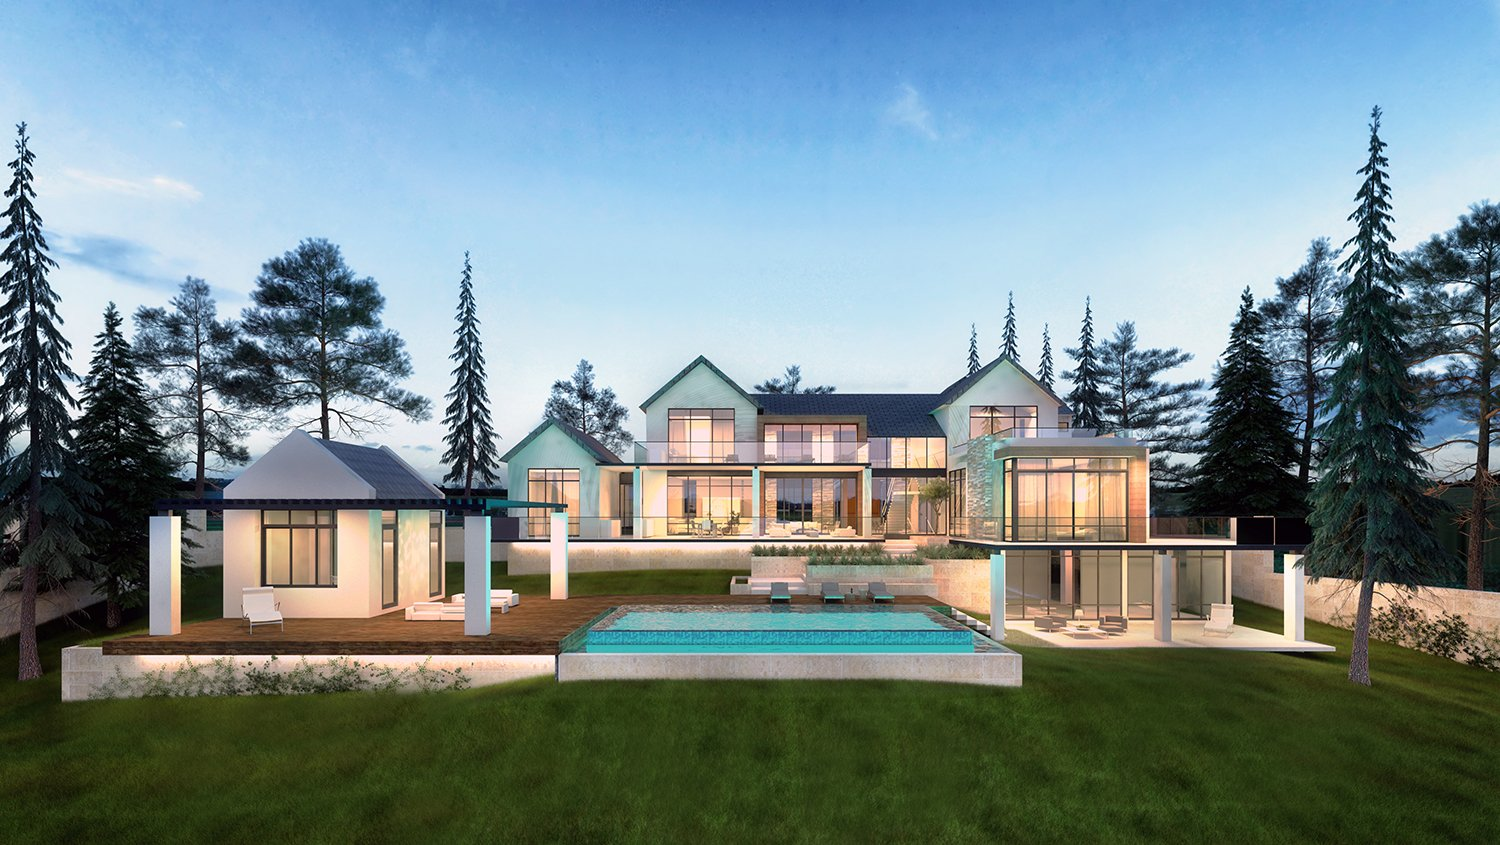 Transitional architecture project in North Carolina